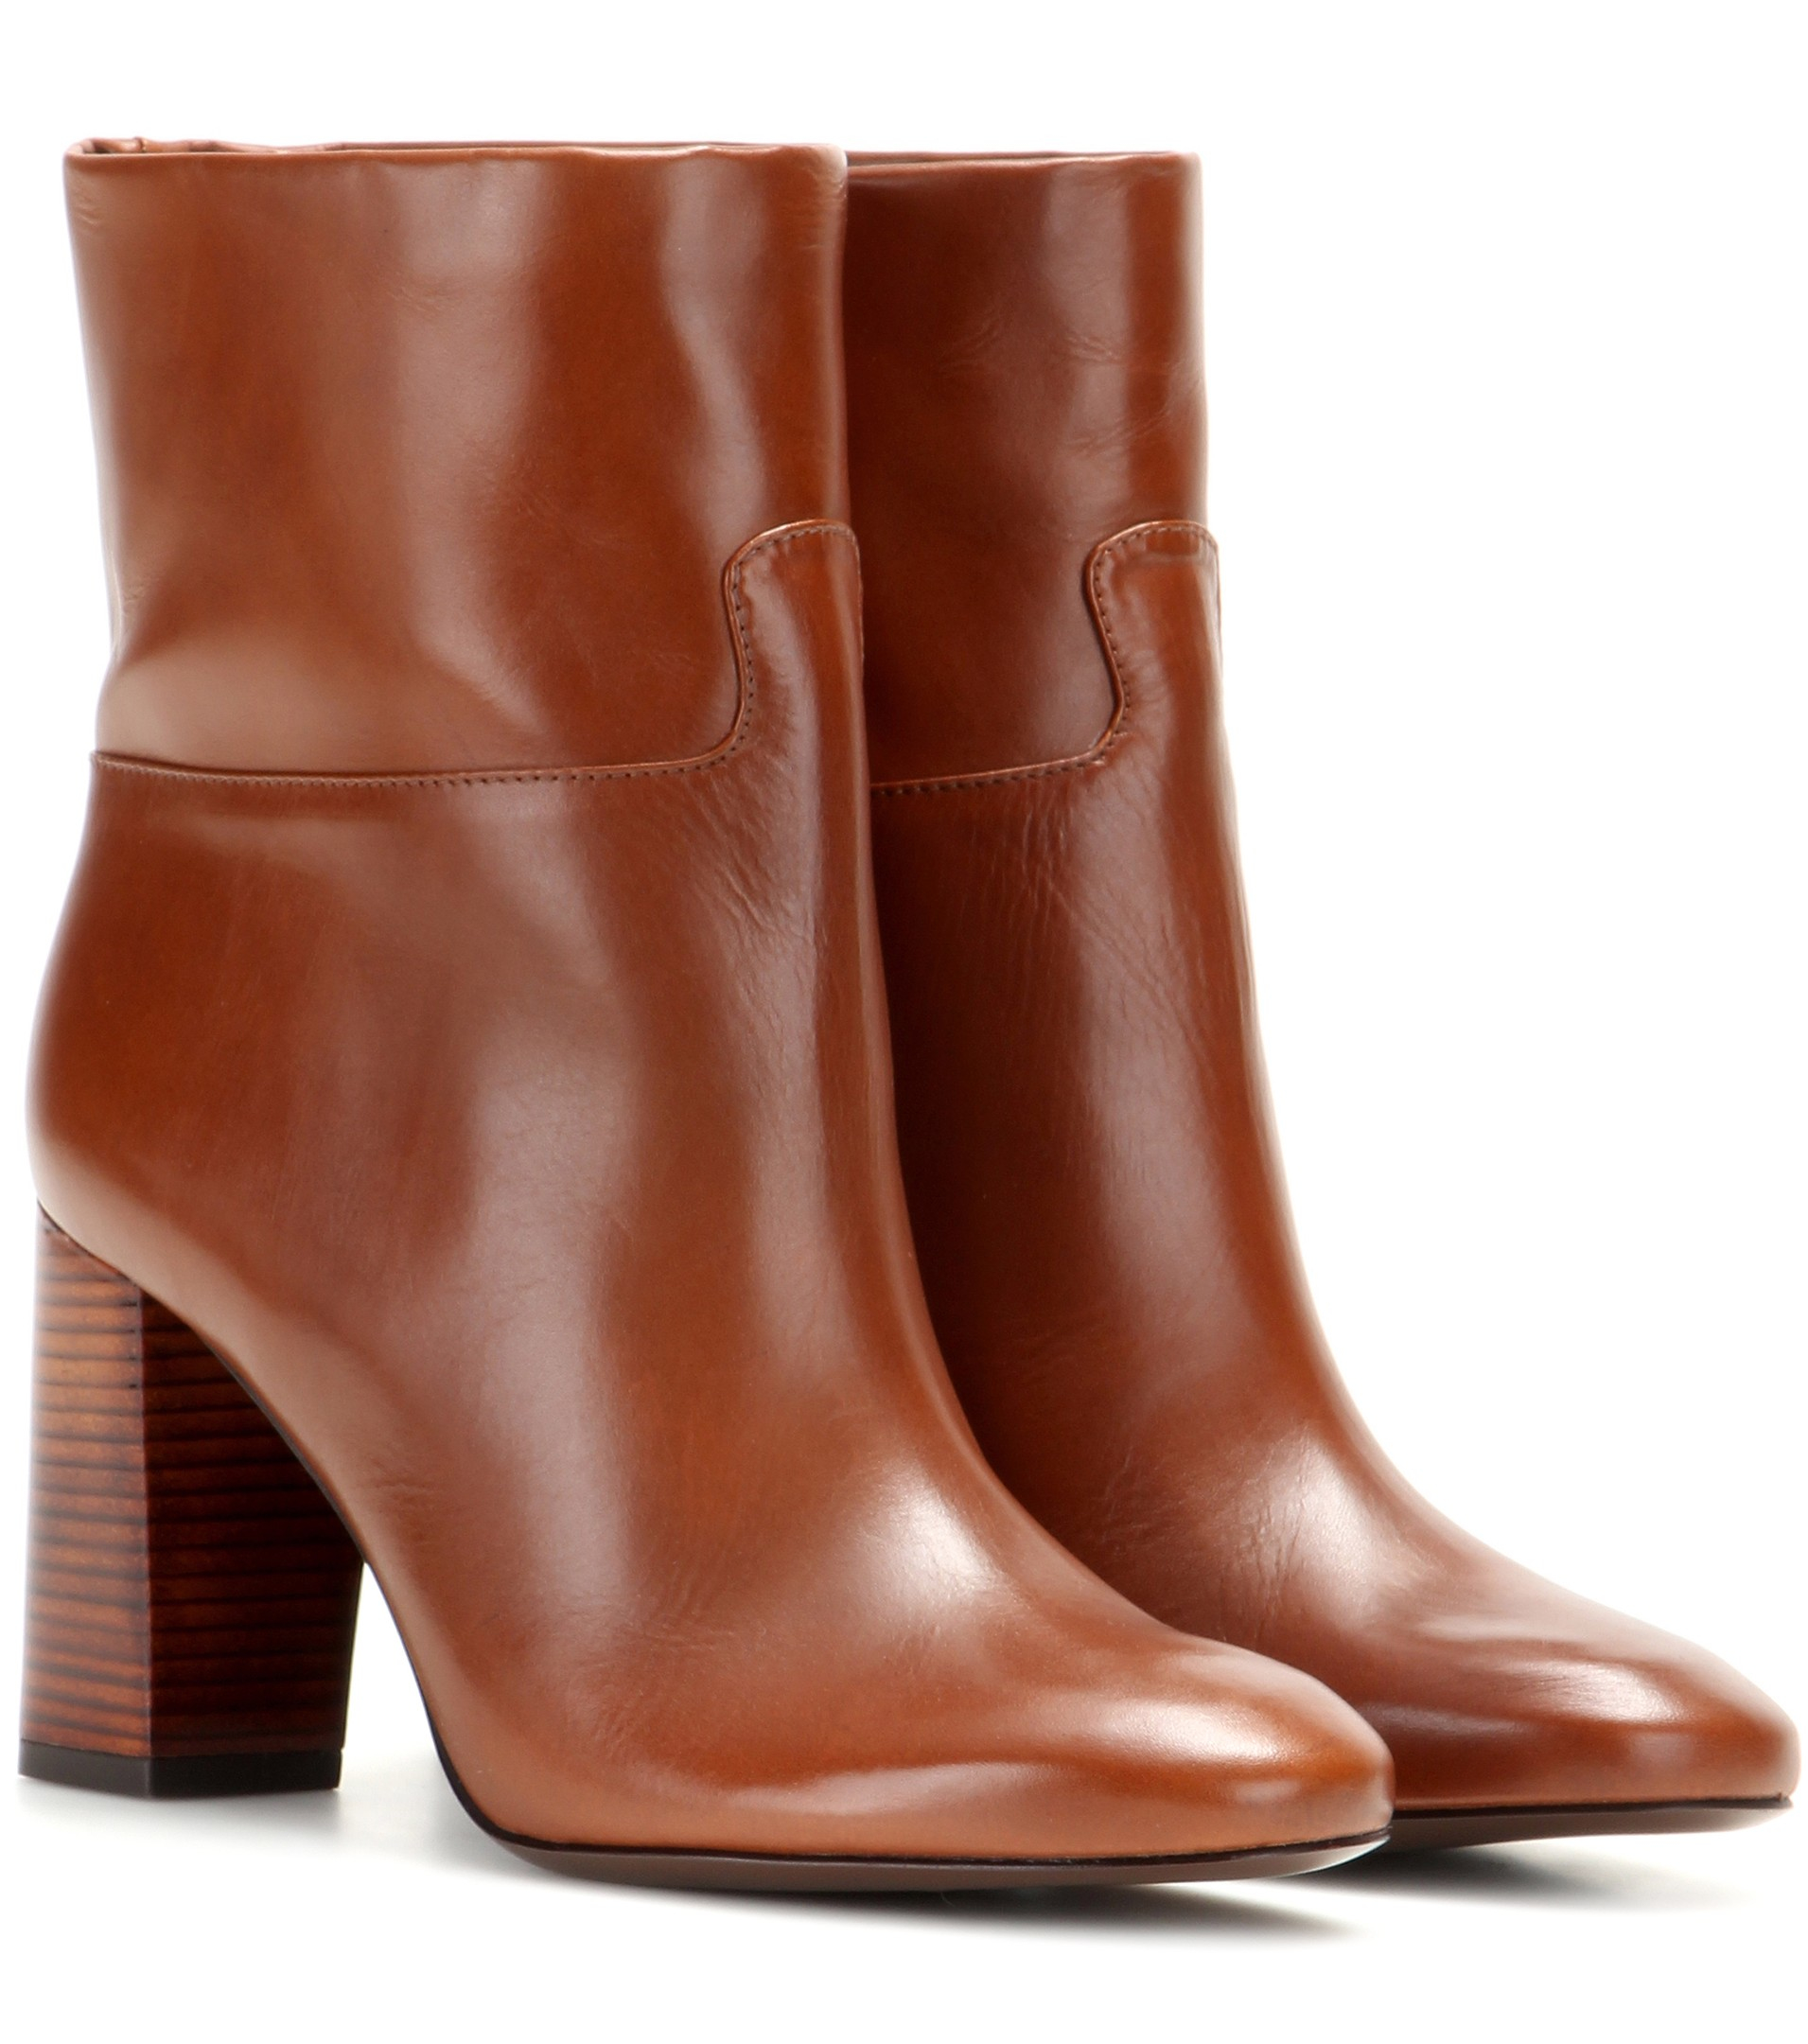 Tory Burch Leather Ankle Boots GhpvI